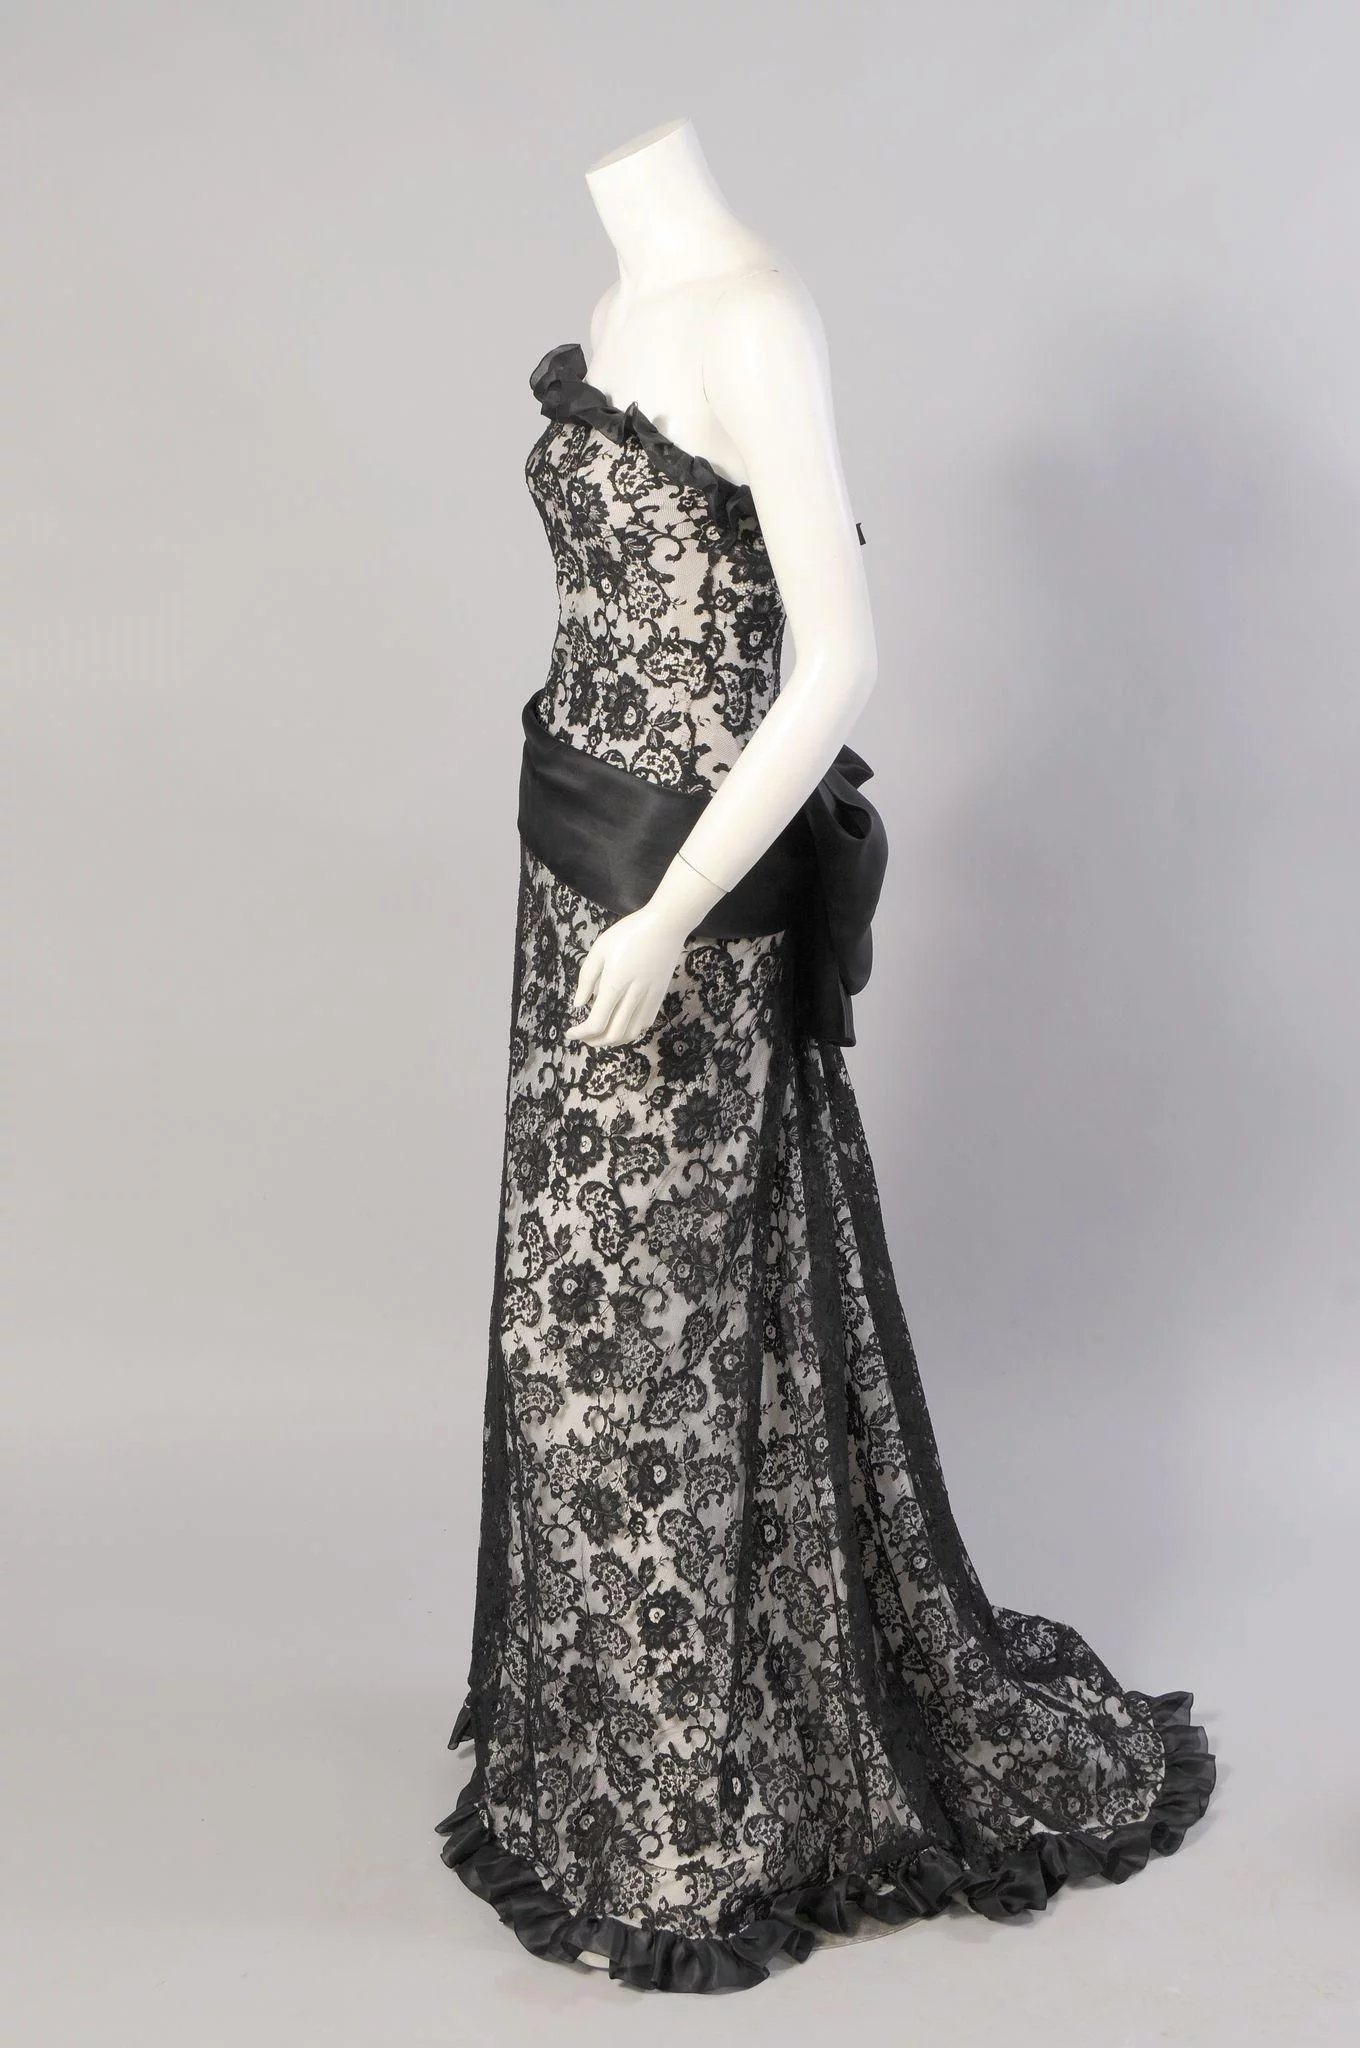 Yves Saint Laurent Haute Couture Evening Dress  Katy Kane  RubyLUX